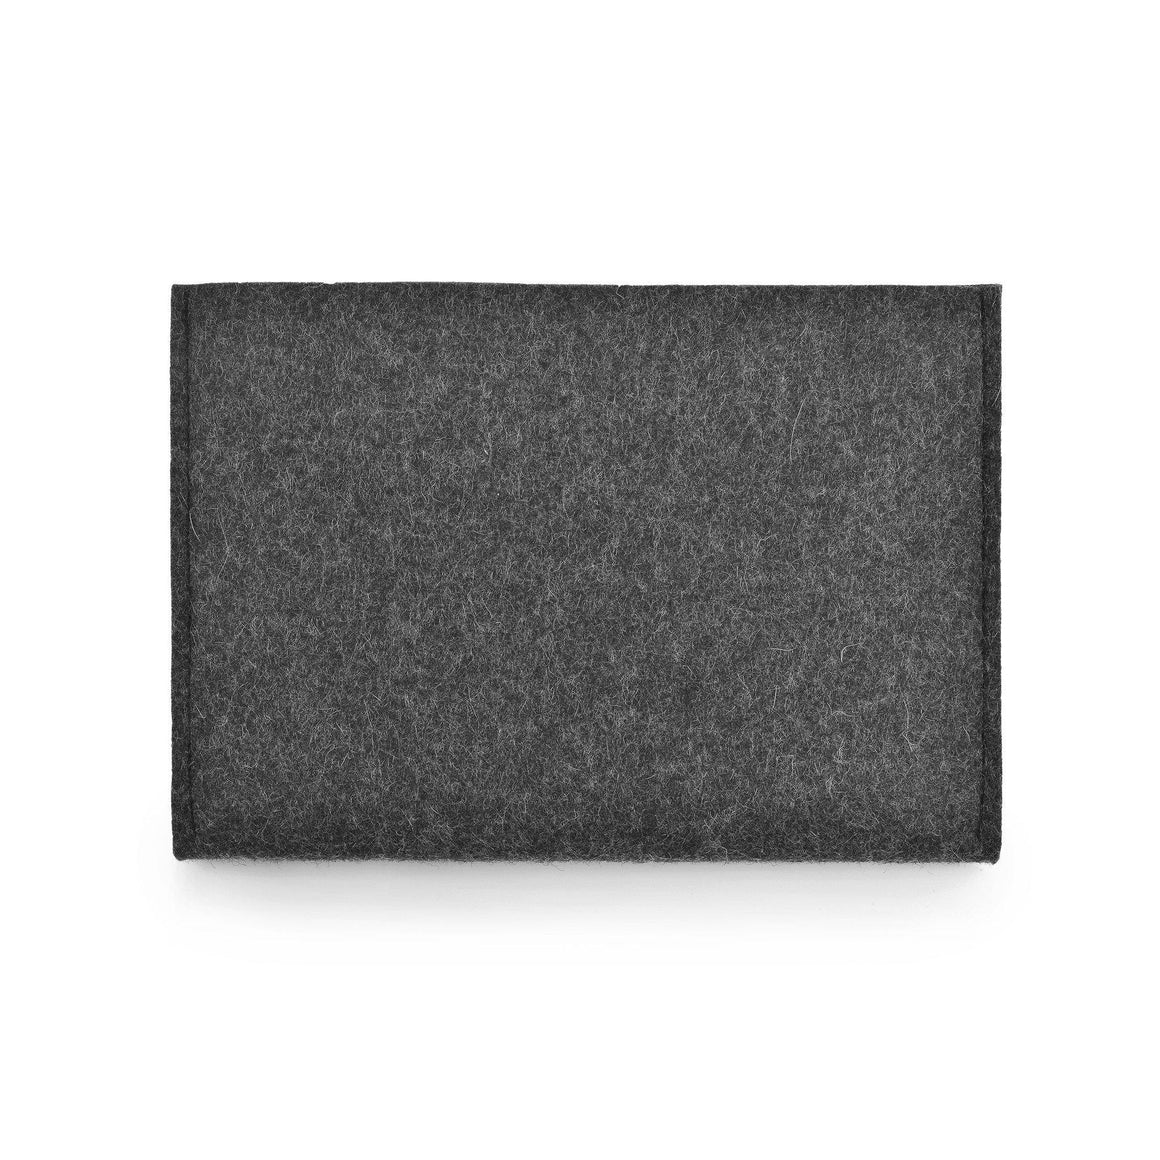 iPad Pro 12.9 inch Wool Felt Cover Charcoal Landscape - Wrappers UK